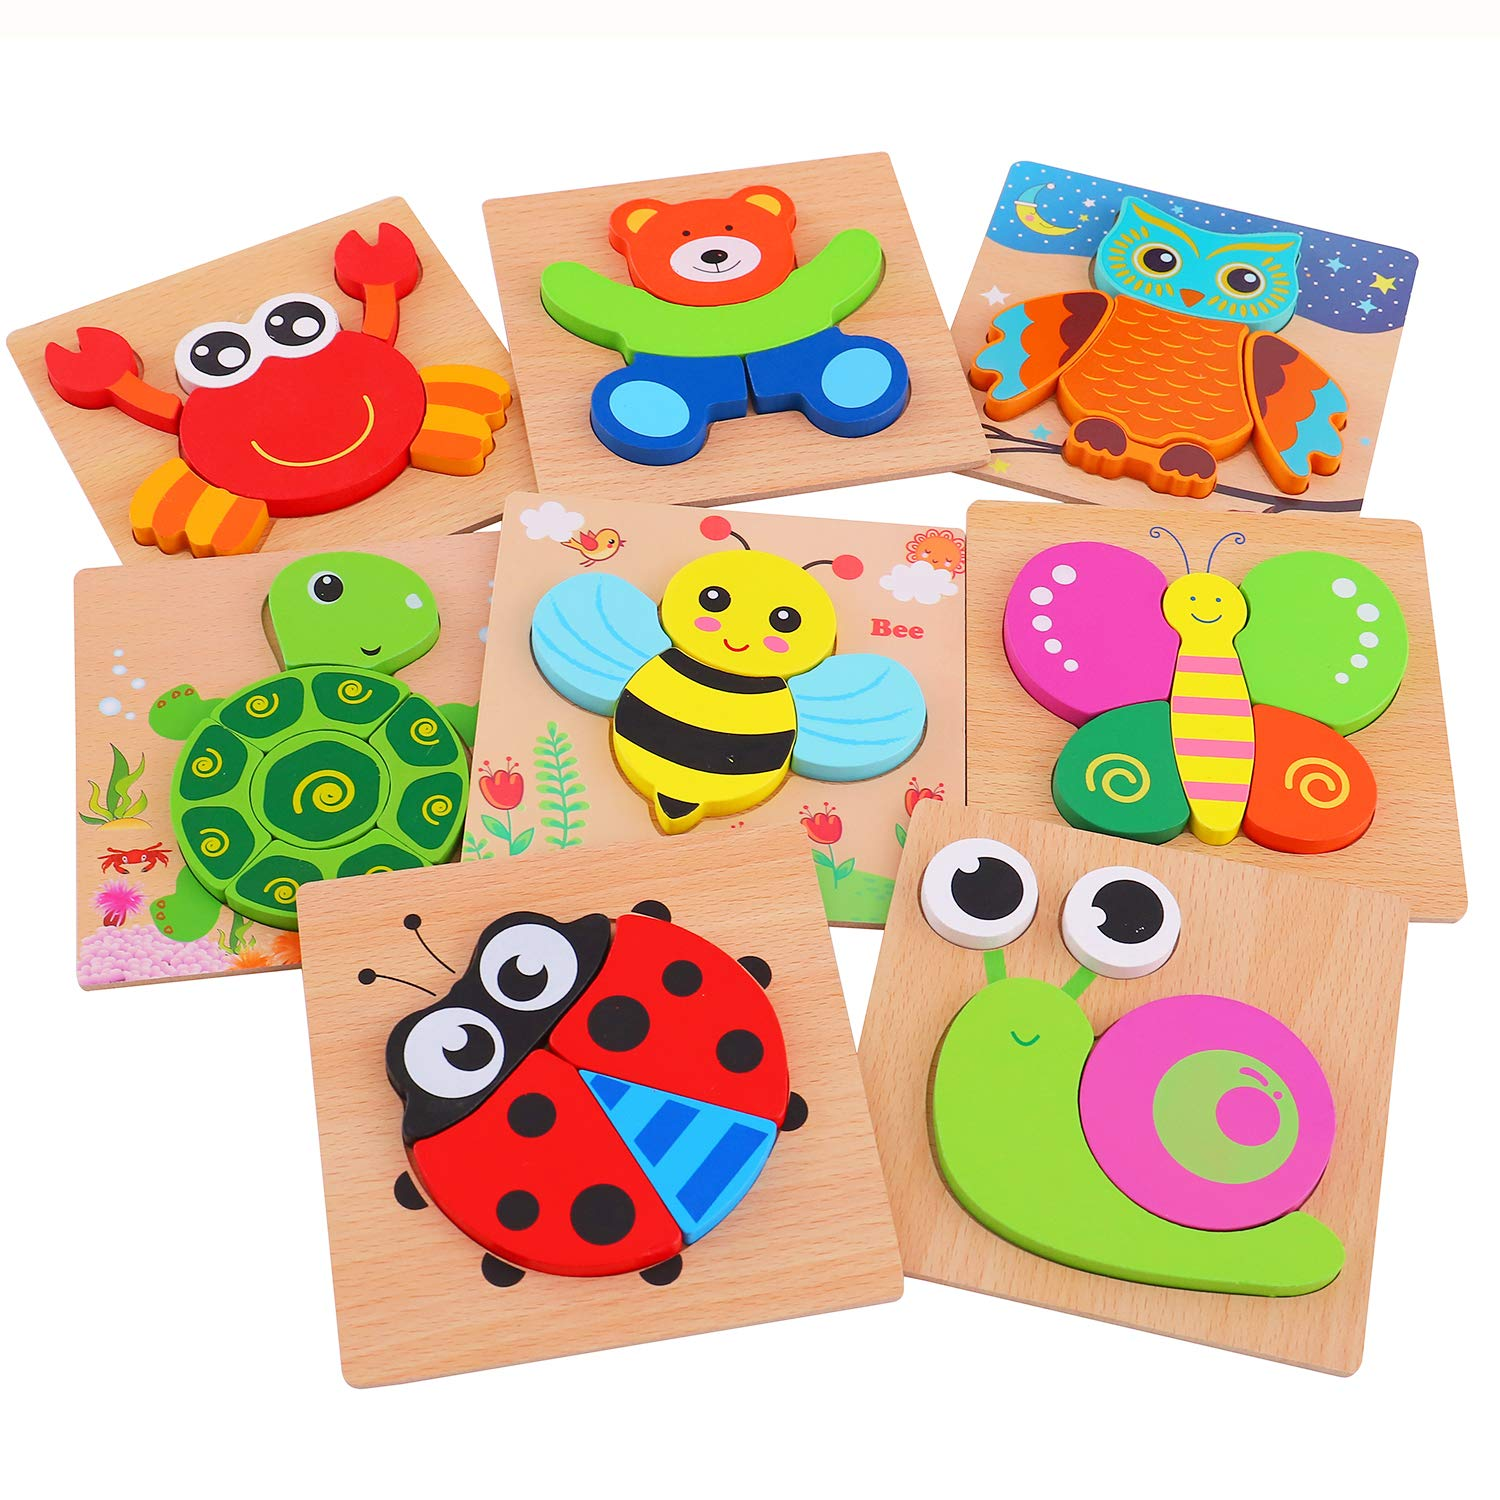 AOLIGE Wooden Jigsaw Puzzles Animal Educational Toys for Toddlers 1 2 3 Years Old Pack of 8 by AOLIGE